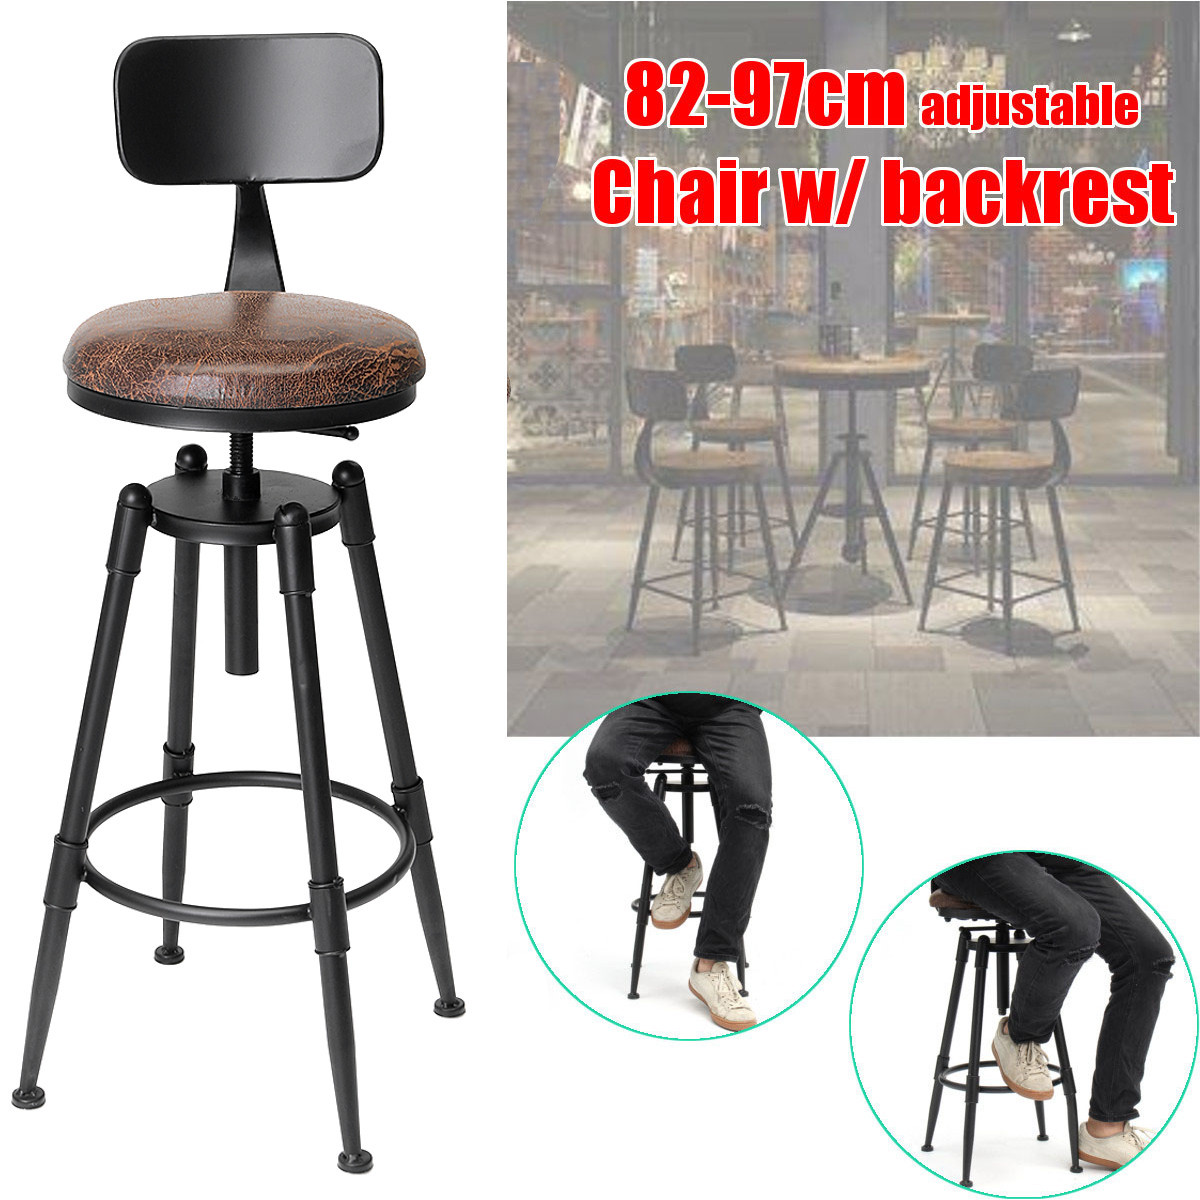 Terrific Adjustable Industrial Dining Chairs High Chair Bar Chair Dailytribune Chair Design For Home Dailytribuneorg